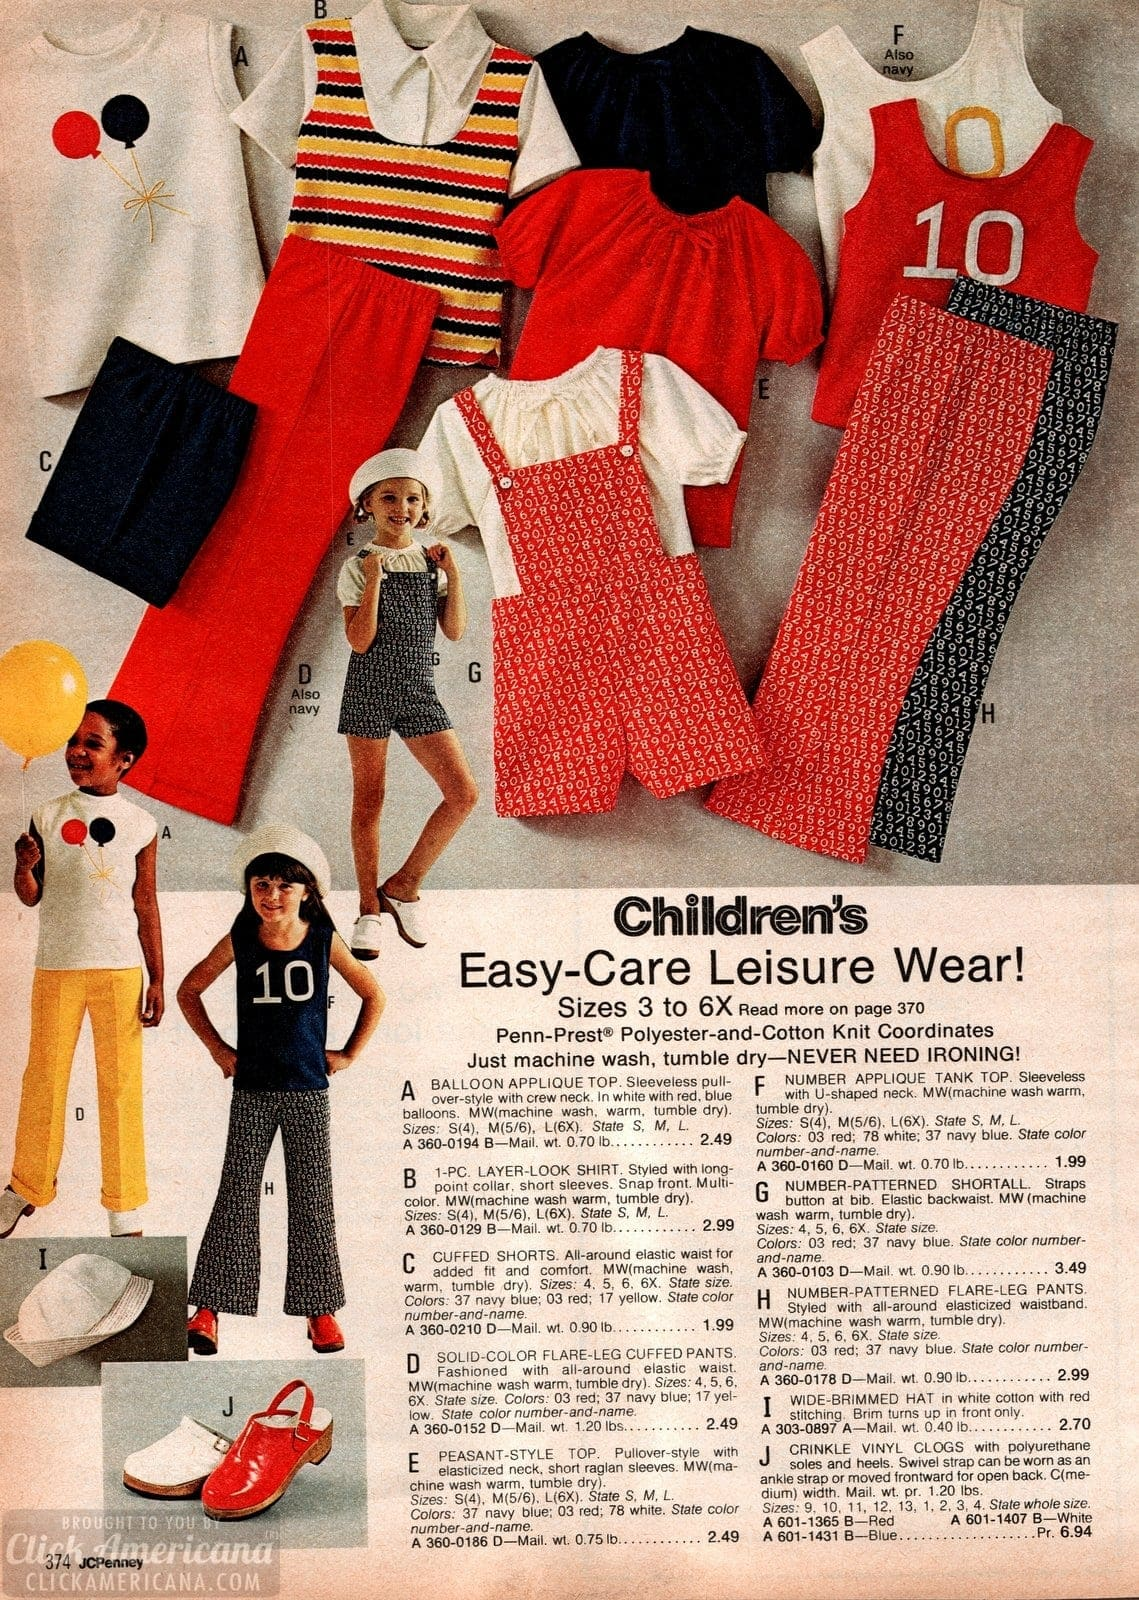 Vintage easy-care leisure wear for little girls - flare pants and peasant-style tops